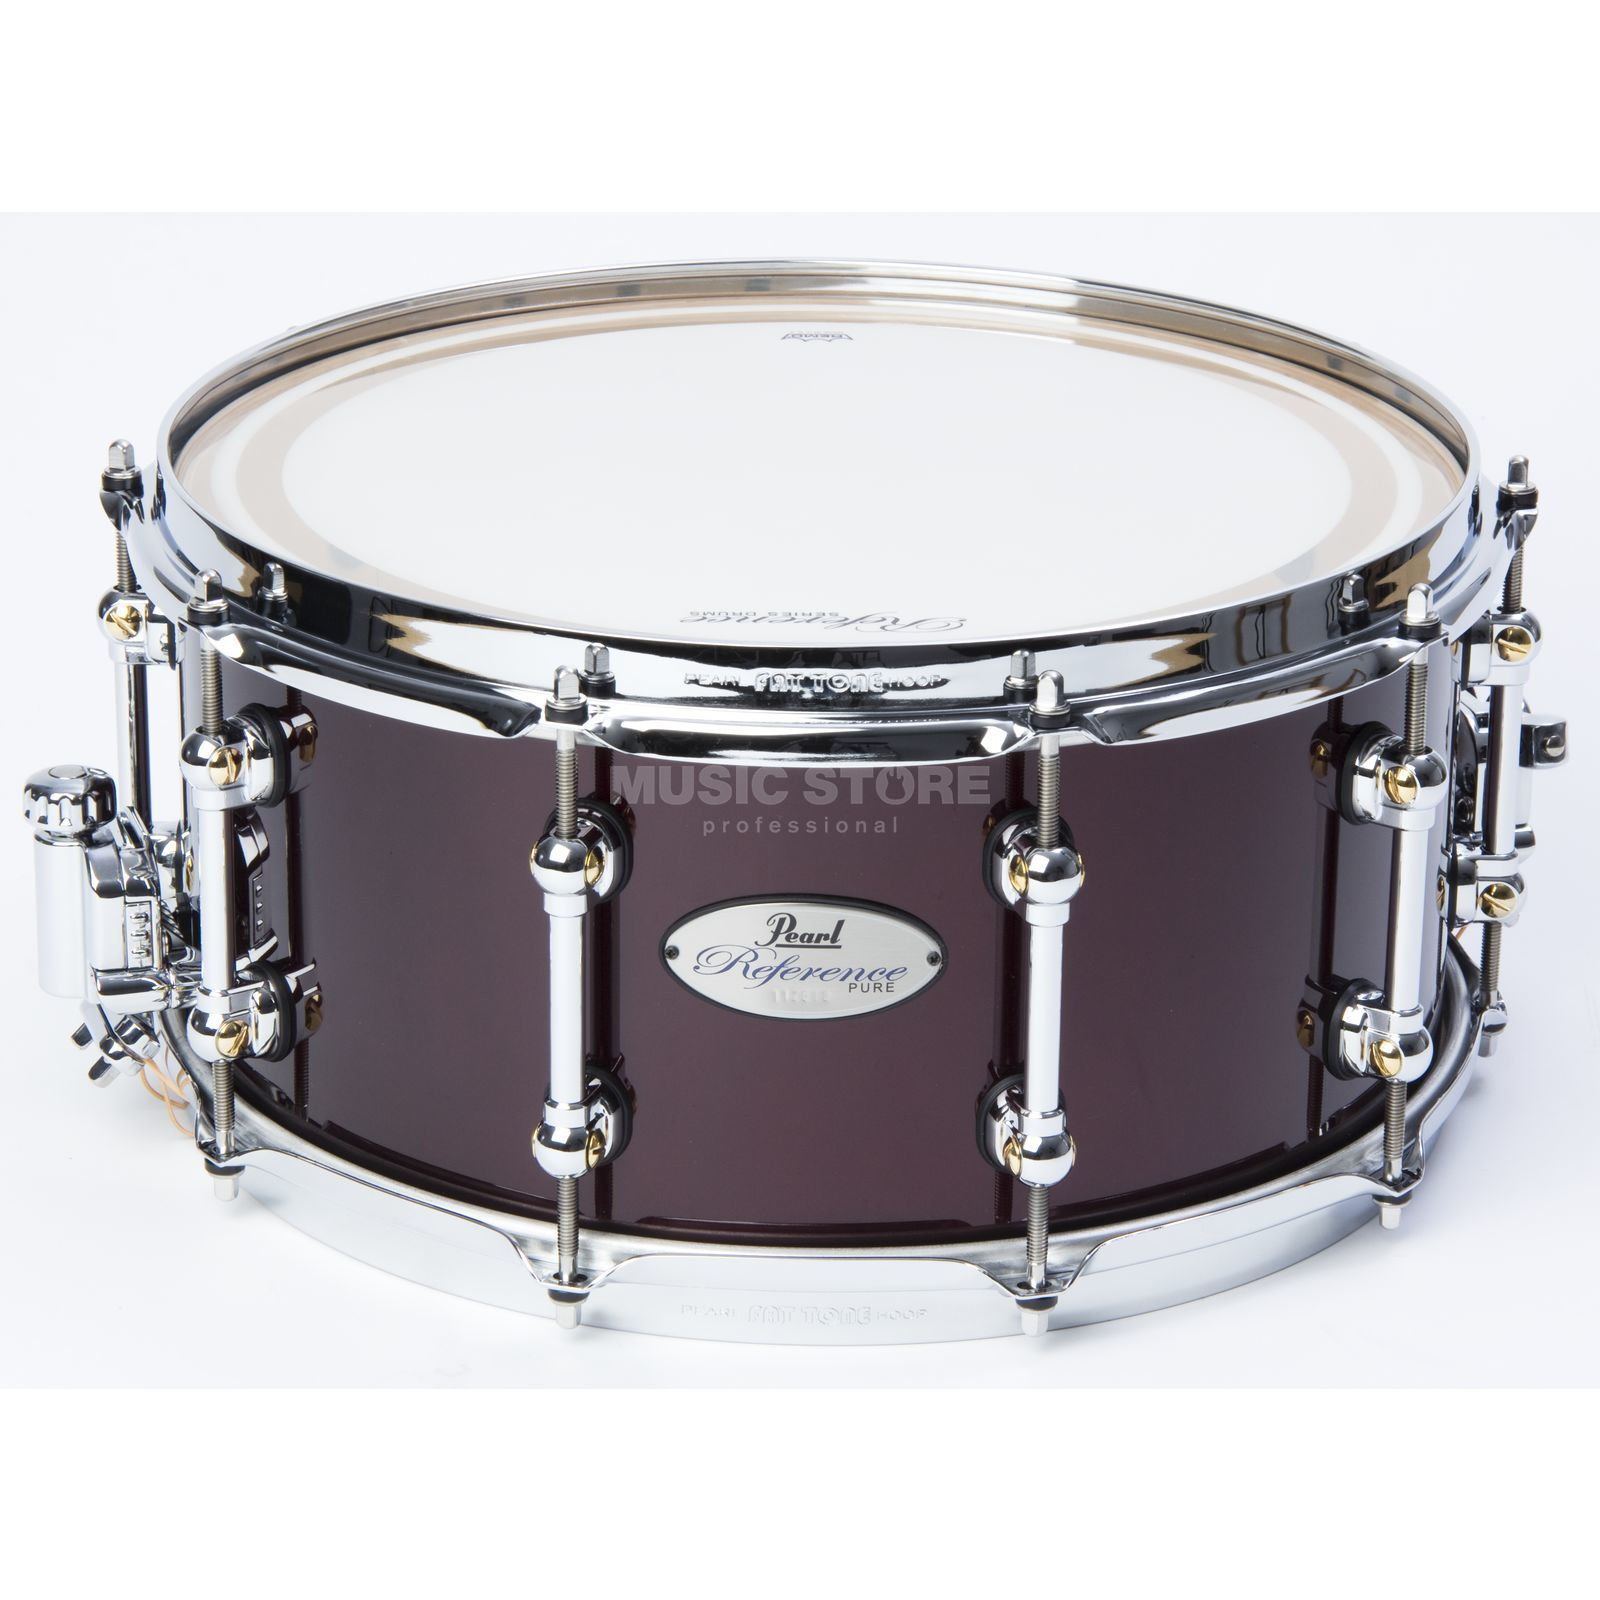 "Pearl Reference Pure Snare 14""x6.5"", Black Cherry #336 Produktbillede"